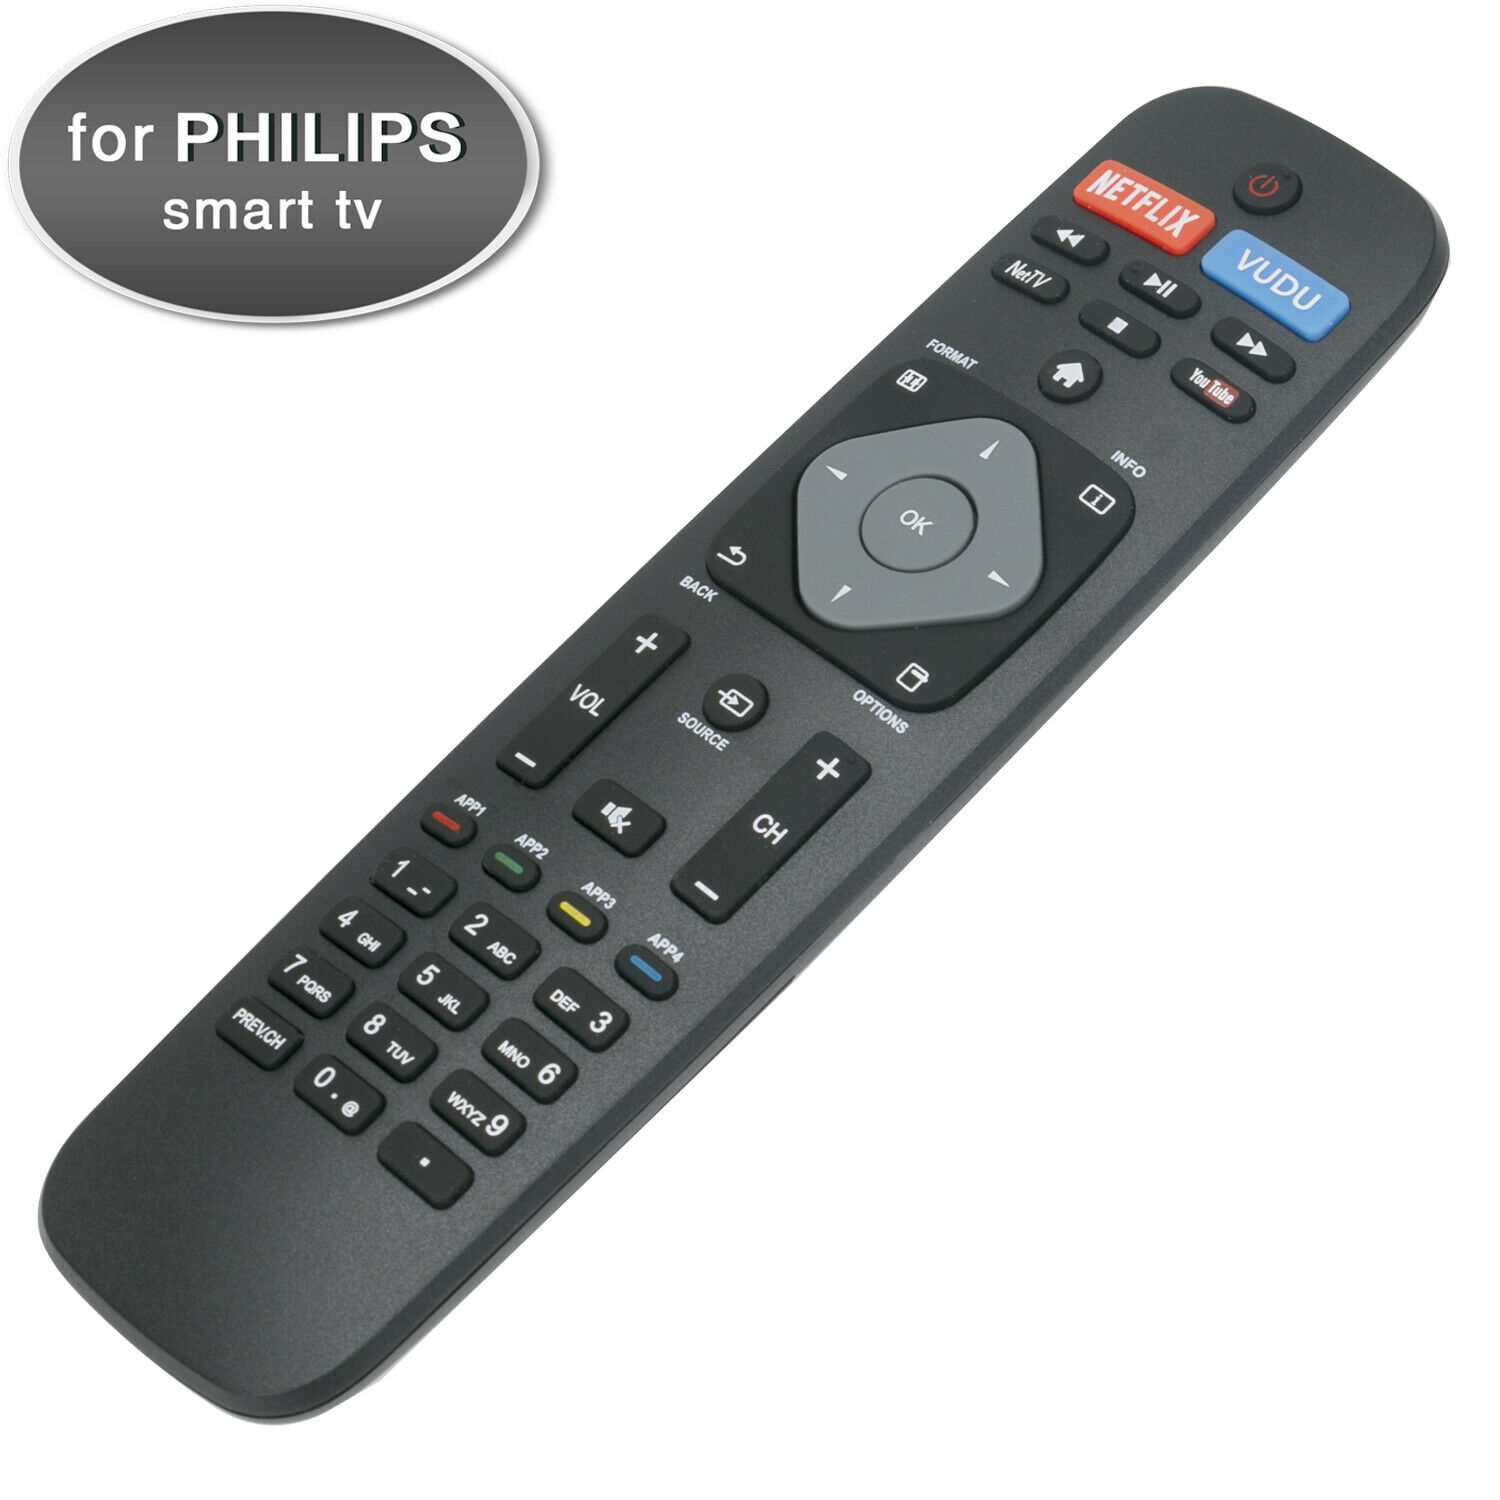 New Smart TV Remote Control for Philips with Netflix Vudu Yo